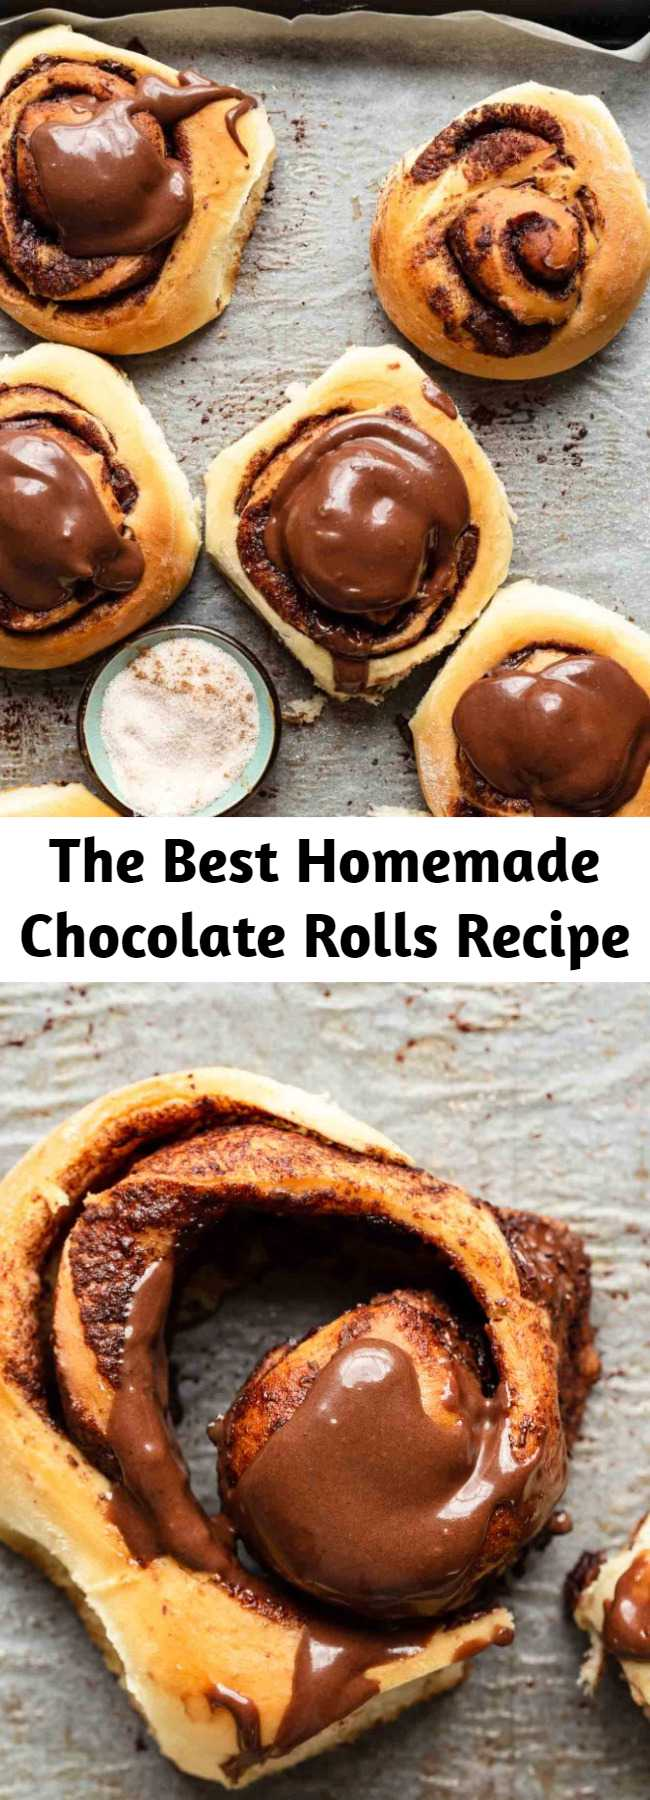 The Best Homemade Chocolate Rolls Recipe - The aroma of these homemade chocolate rolls, while they are baking, is heavenly! Once you bite into these delicious chocolate cinnamon rolls, you will be shocked to know they are so easy to make. You only need 30 minutes of prep time! #baking #cinnamonrolls #chocolate #sweet #desserts